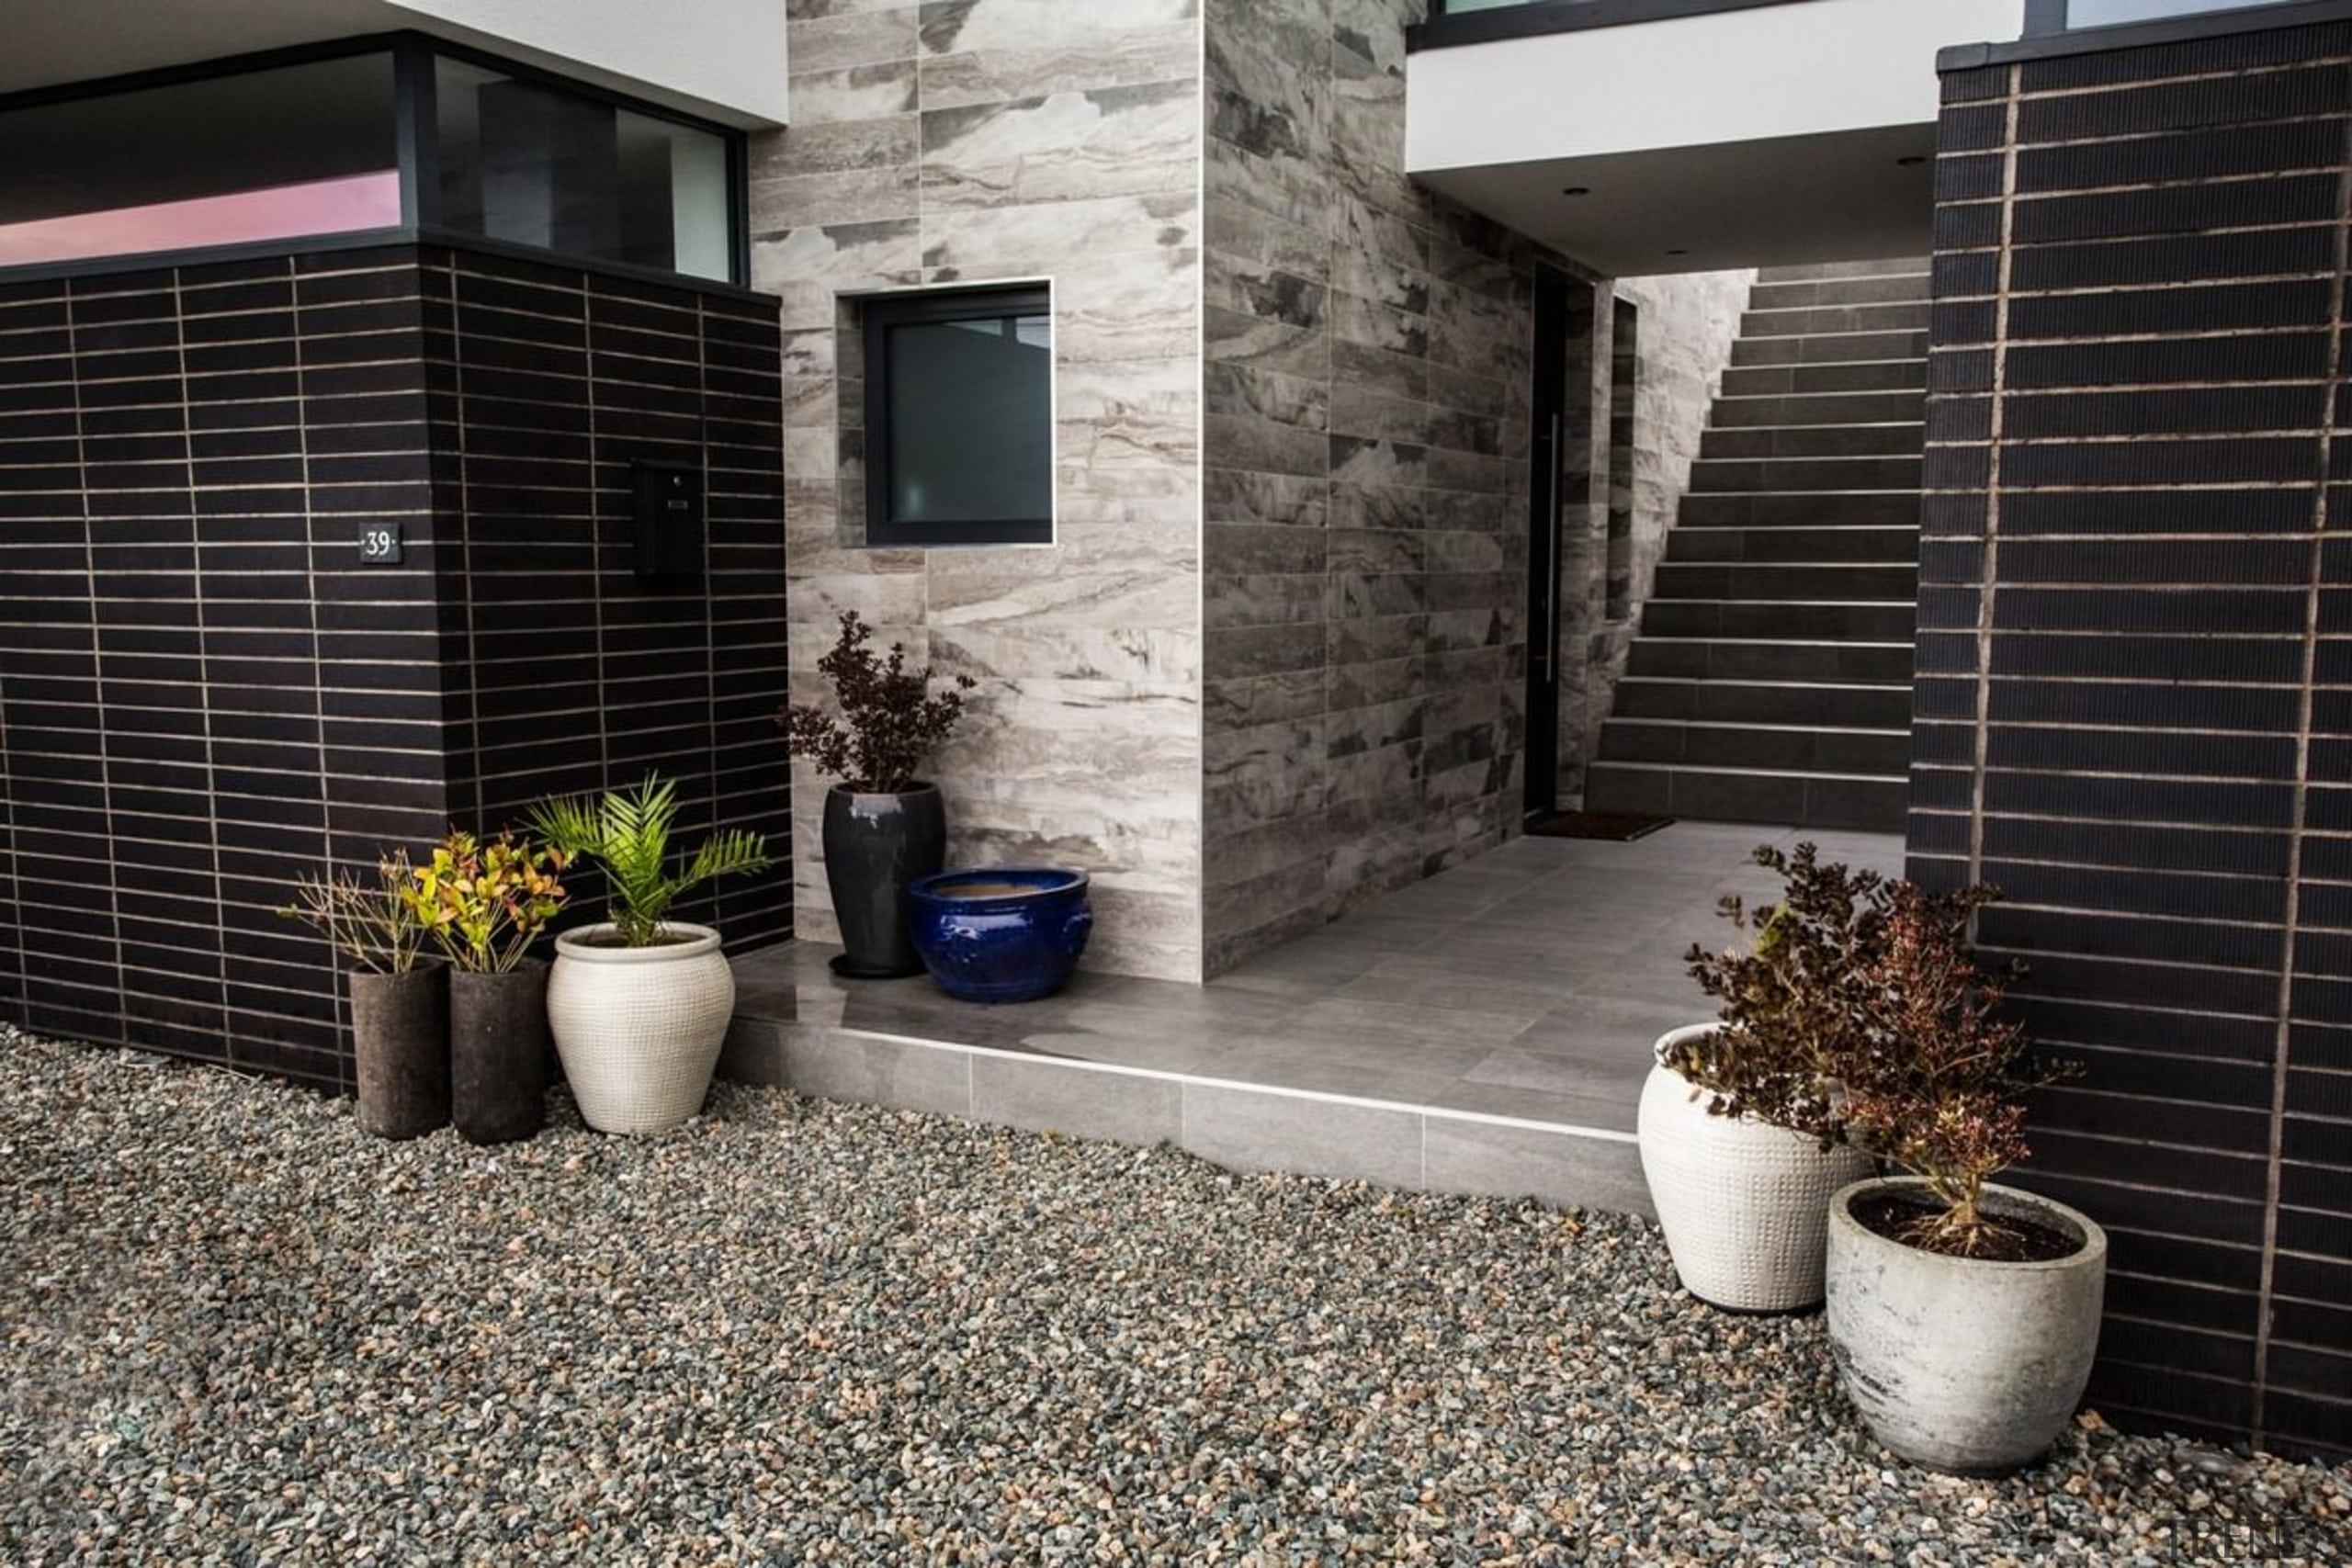 Architect: 2020 ArchitectsPhotography by Reinis Babrovskis courtyard, facade, floor, flooring, home, house, property, real estate, siding, walkway, wall, window, black, gray